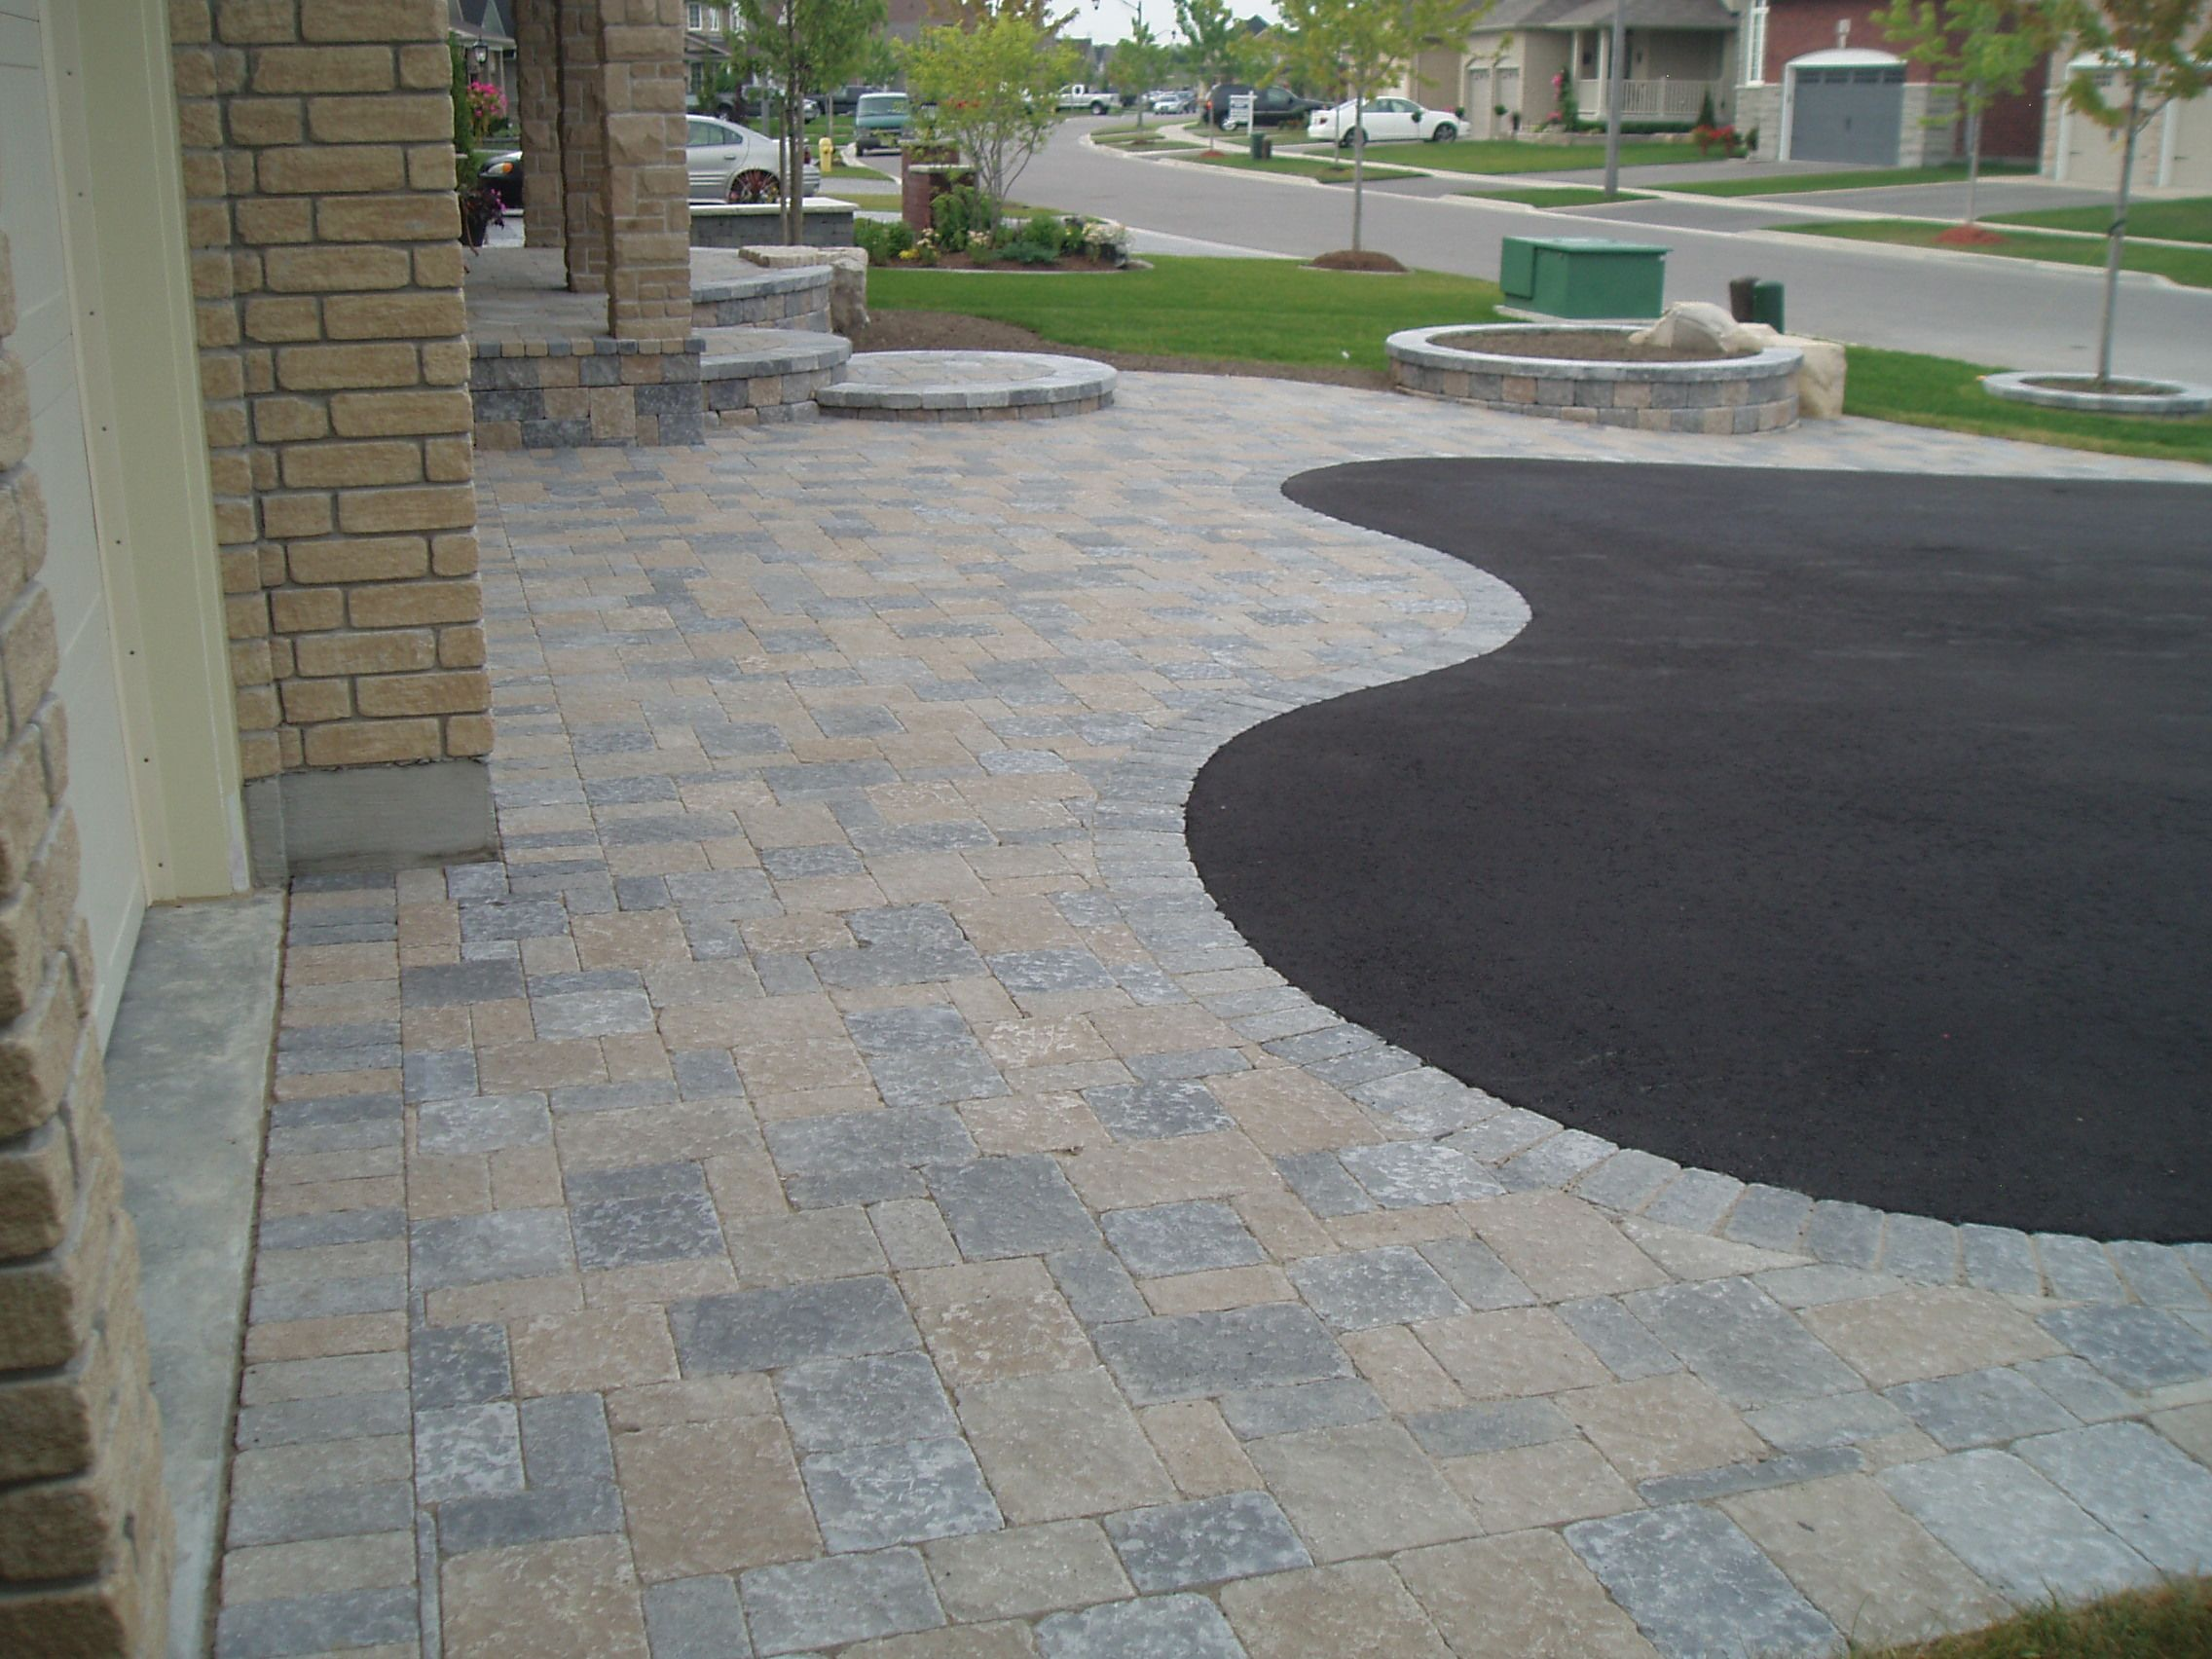 driveway finishes for in front of garage | Big or small ...